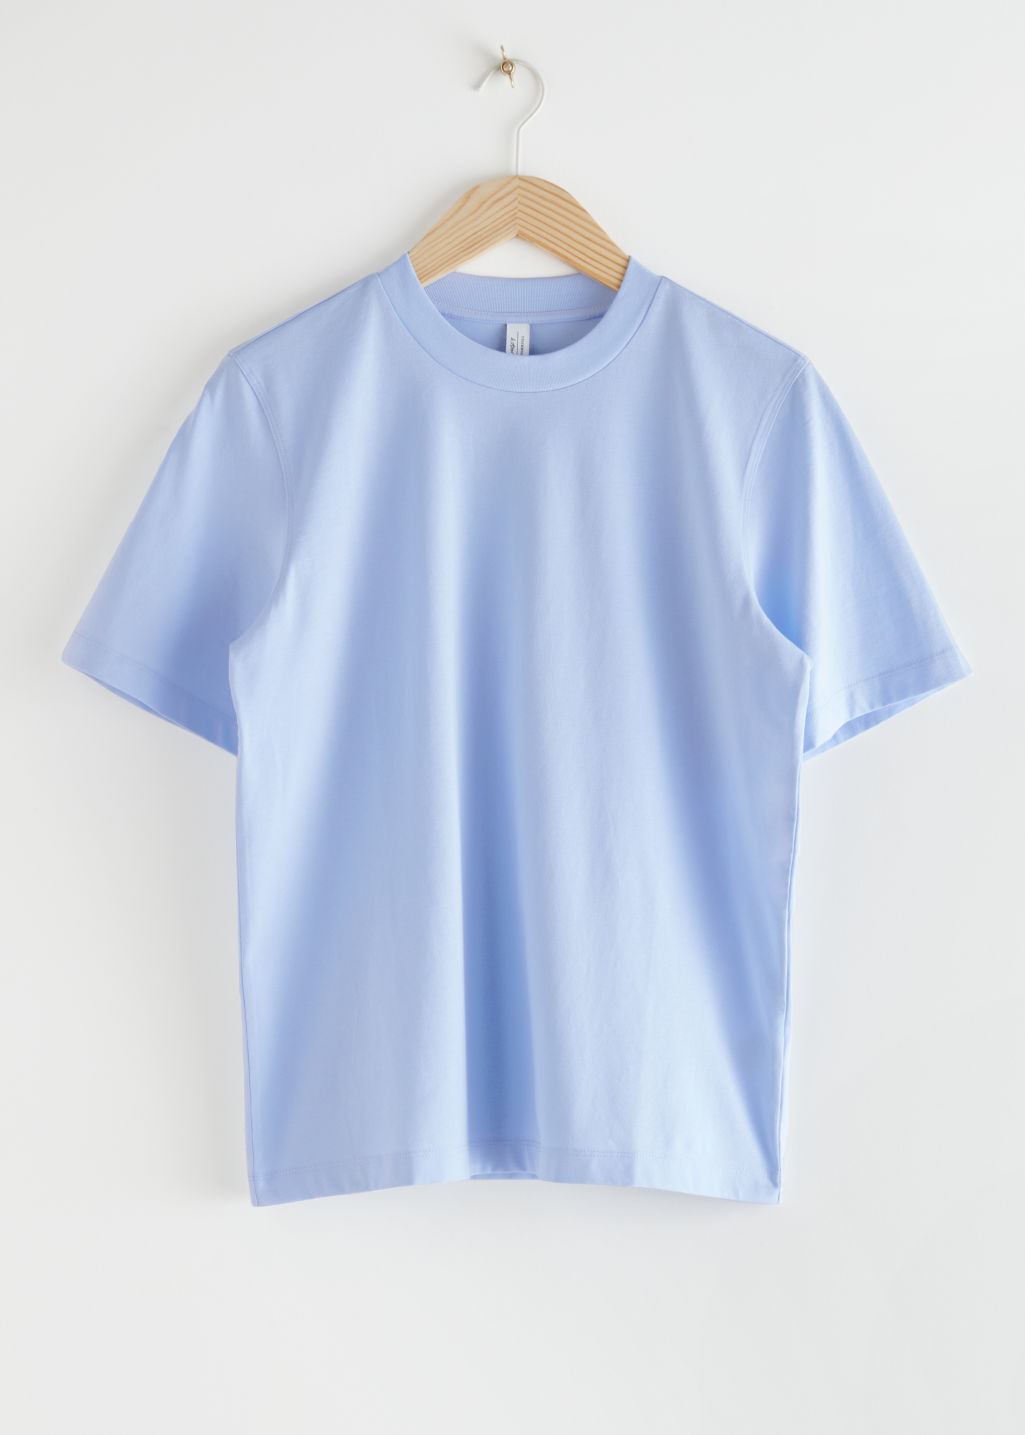 StillLife Front Image of Stories Boxy Organic Cotton T-Shirt in Blue